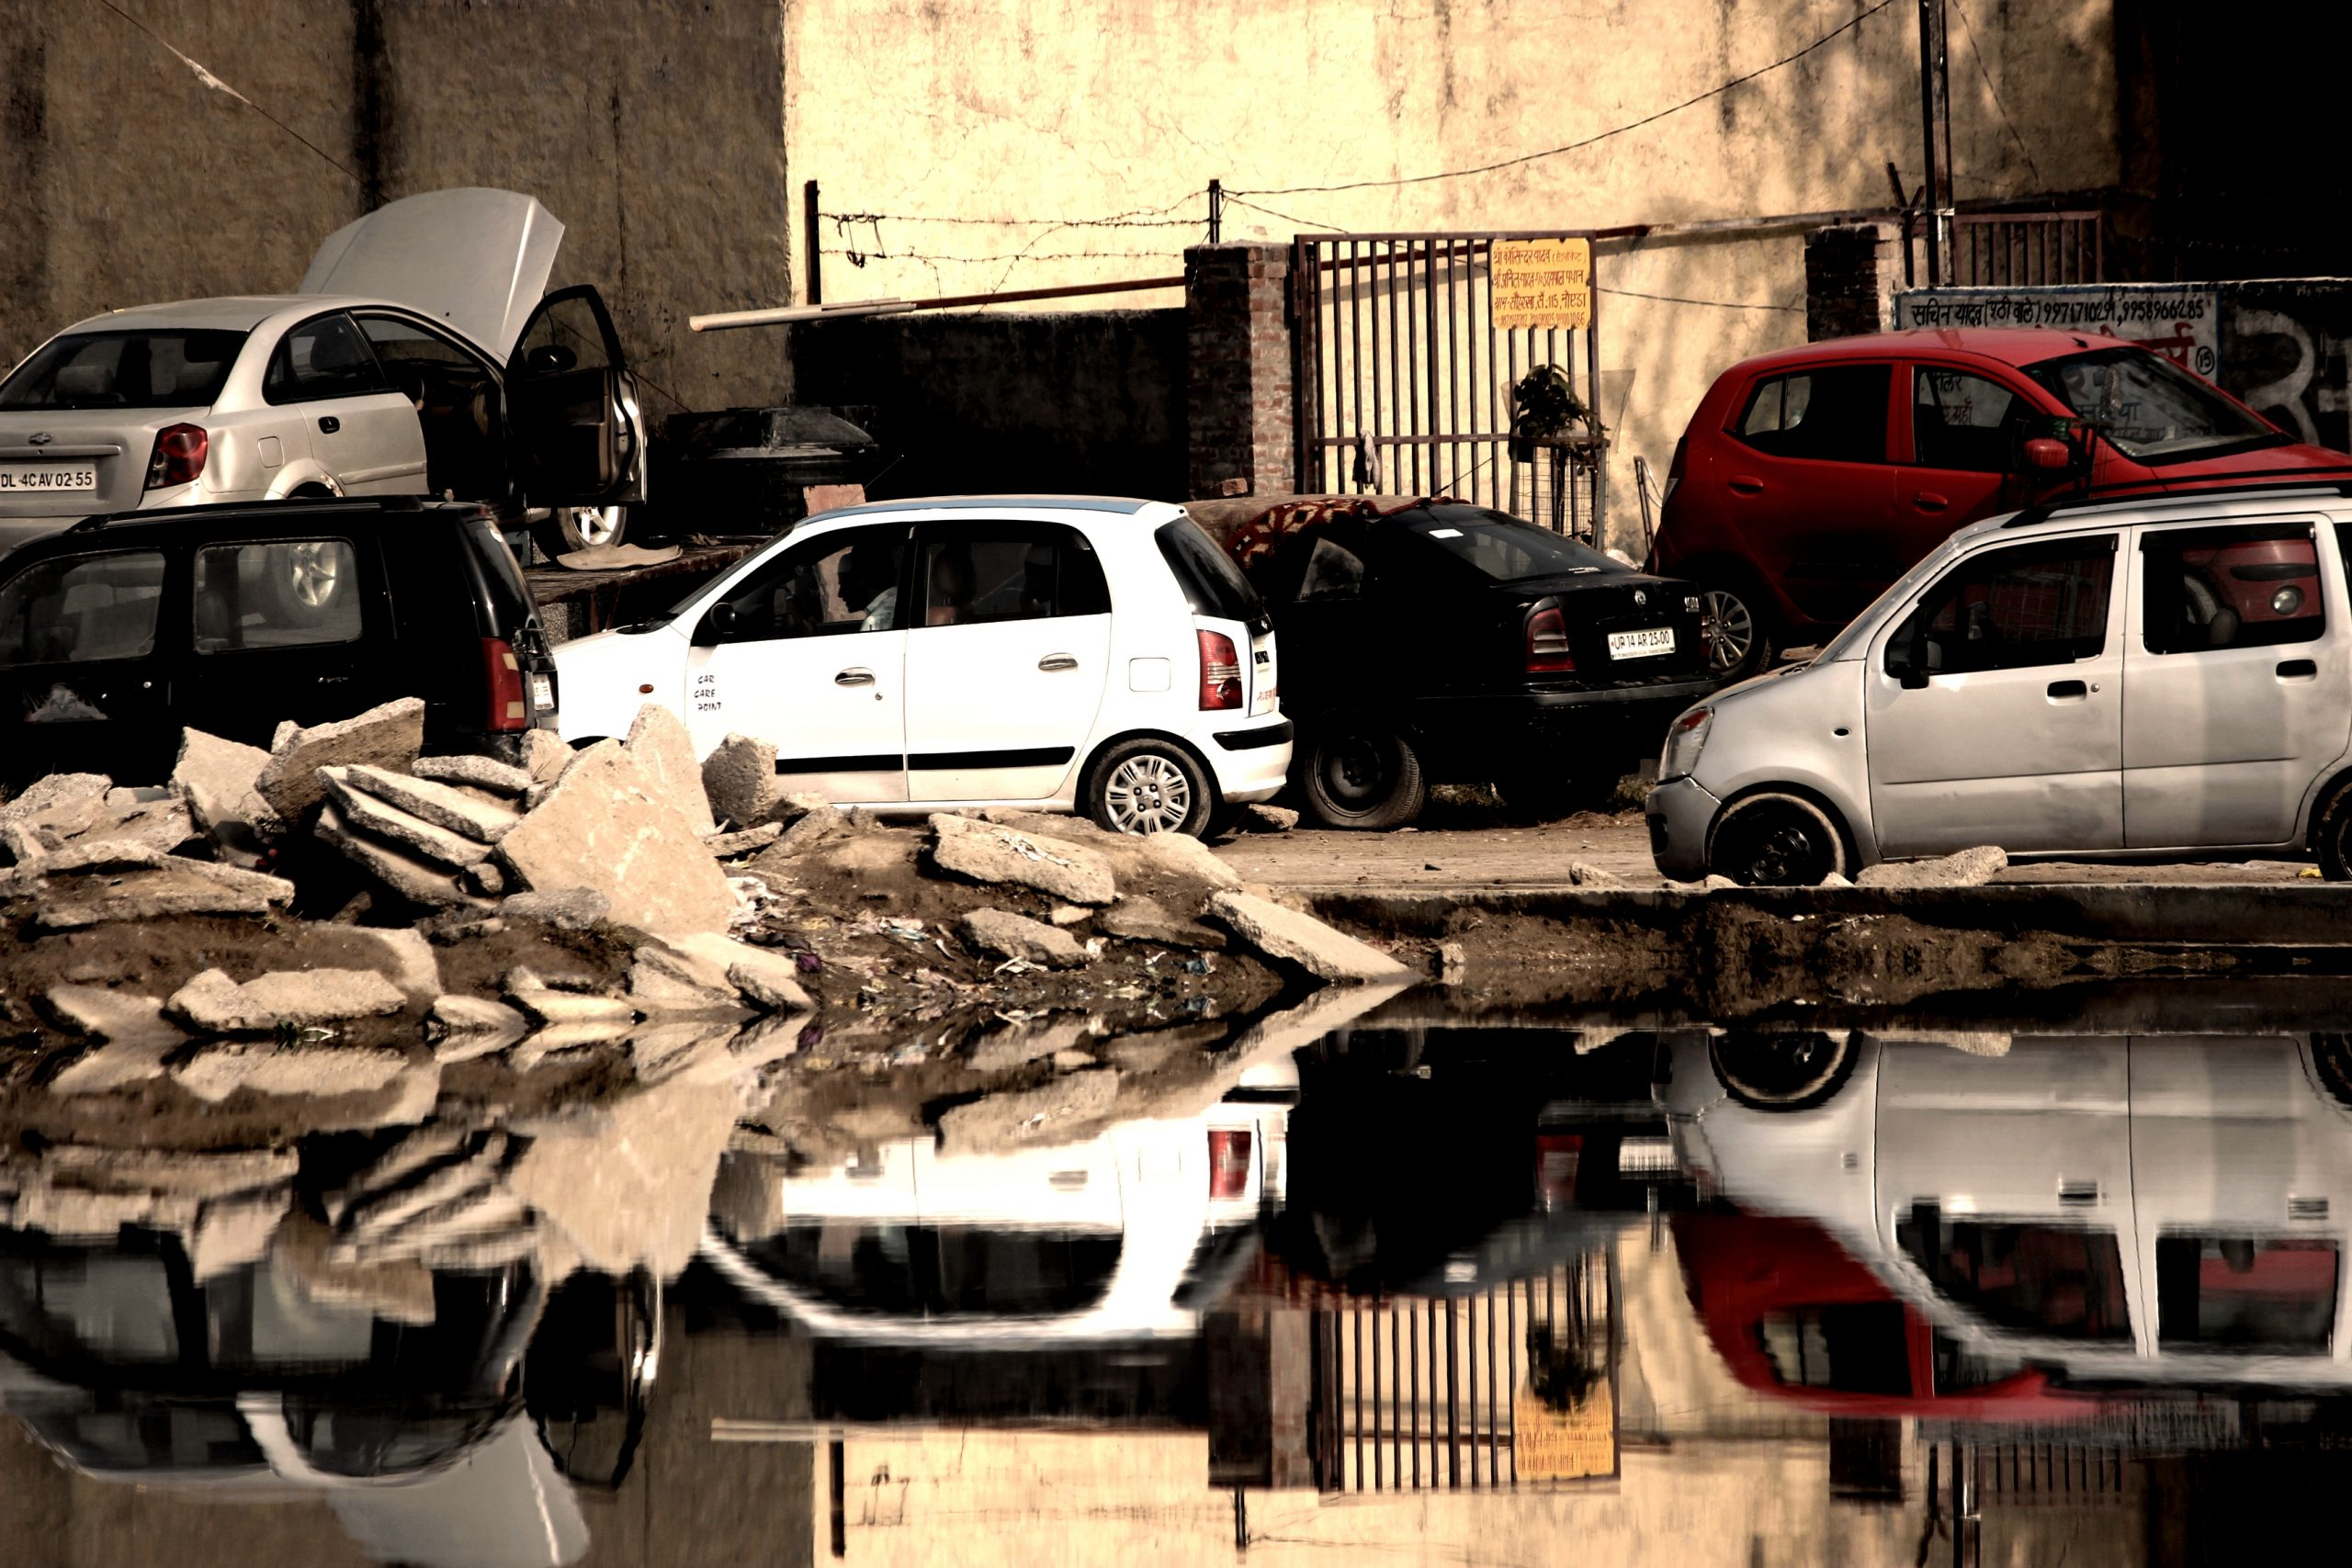 Cars reflection in water